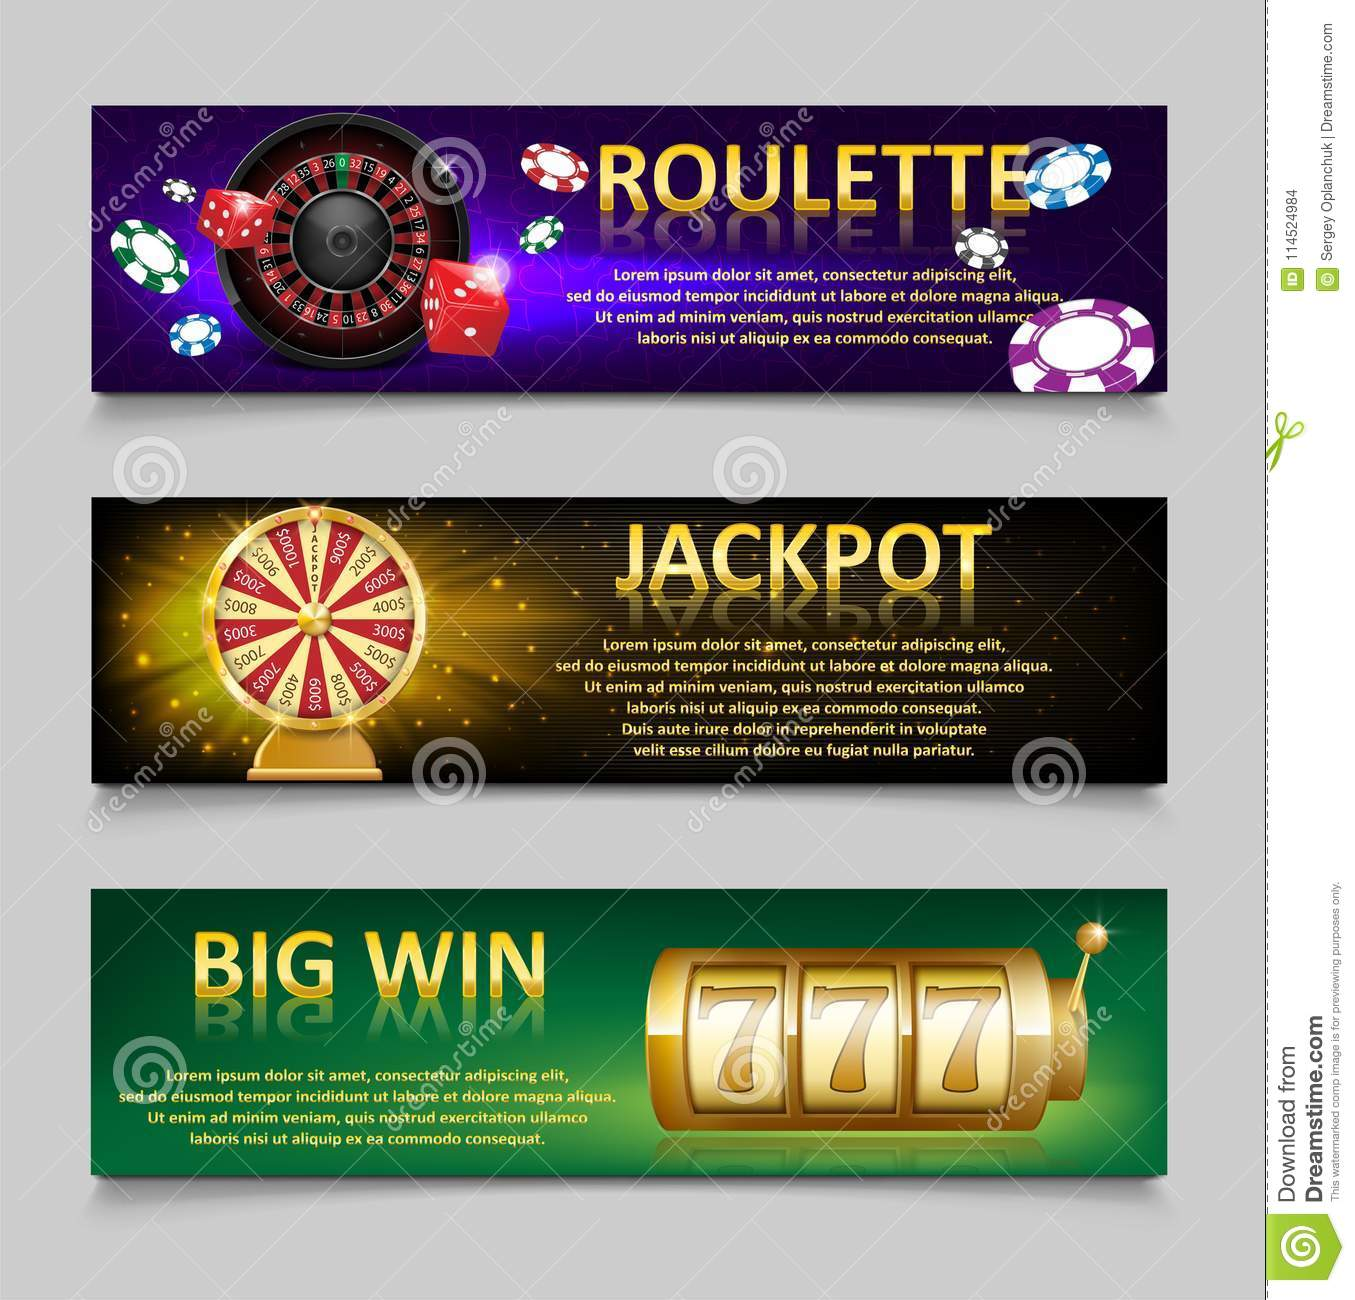 Gambling banners with Roulette Wheel and Casino Chips, lottery machine, gold fortune wheel set. Casino jackpot banner